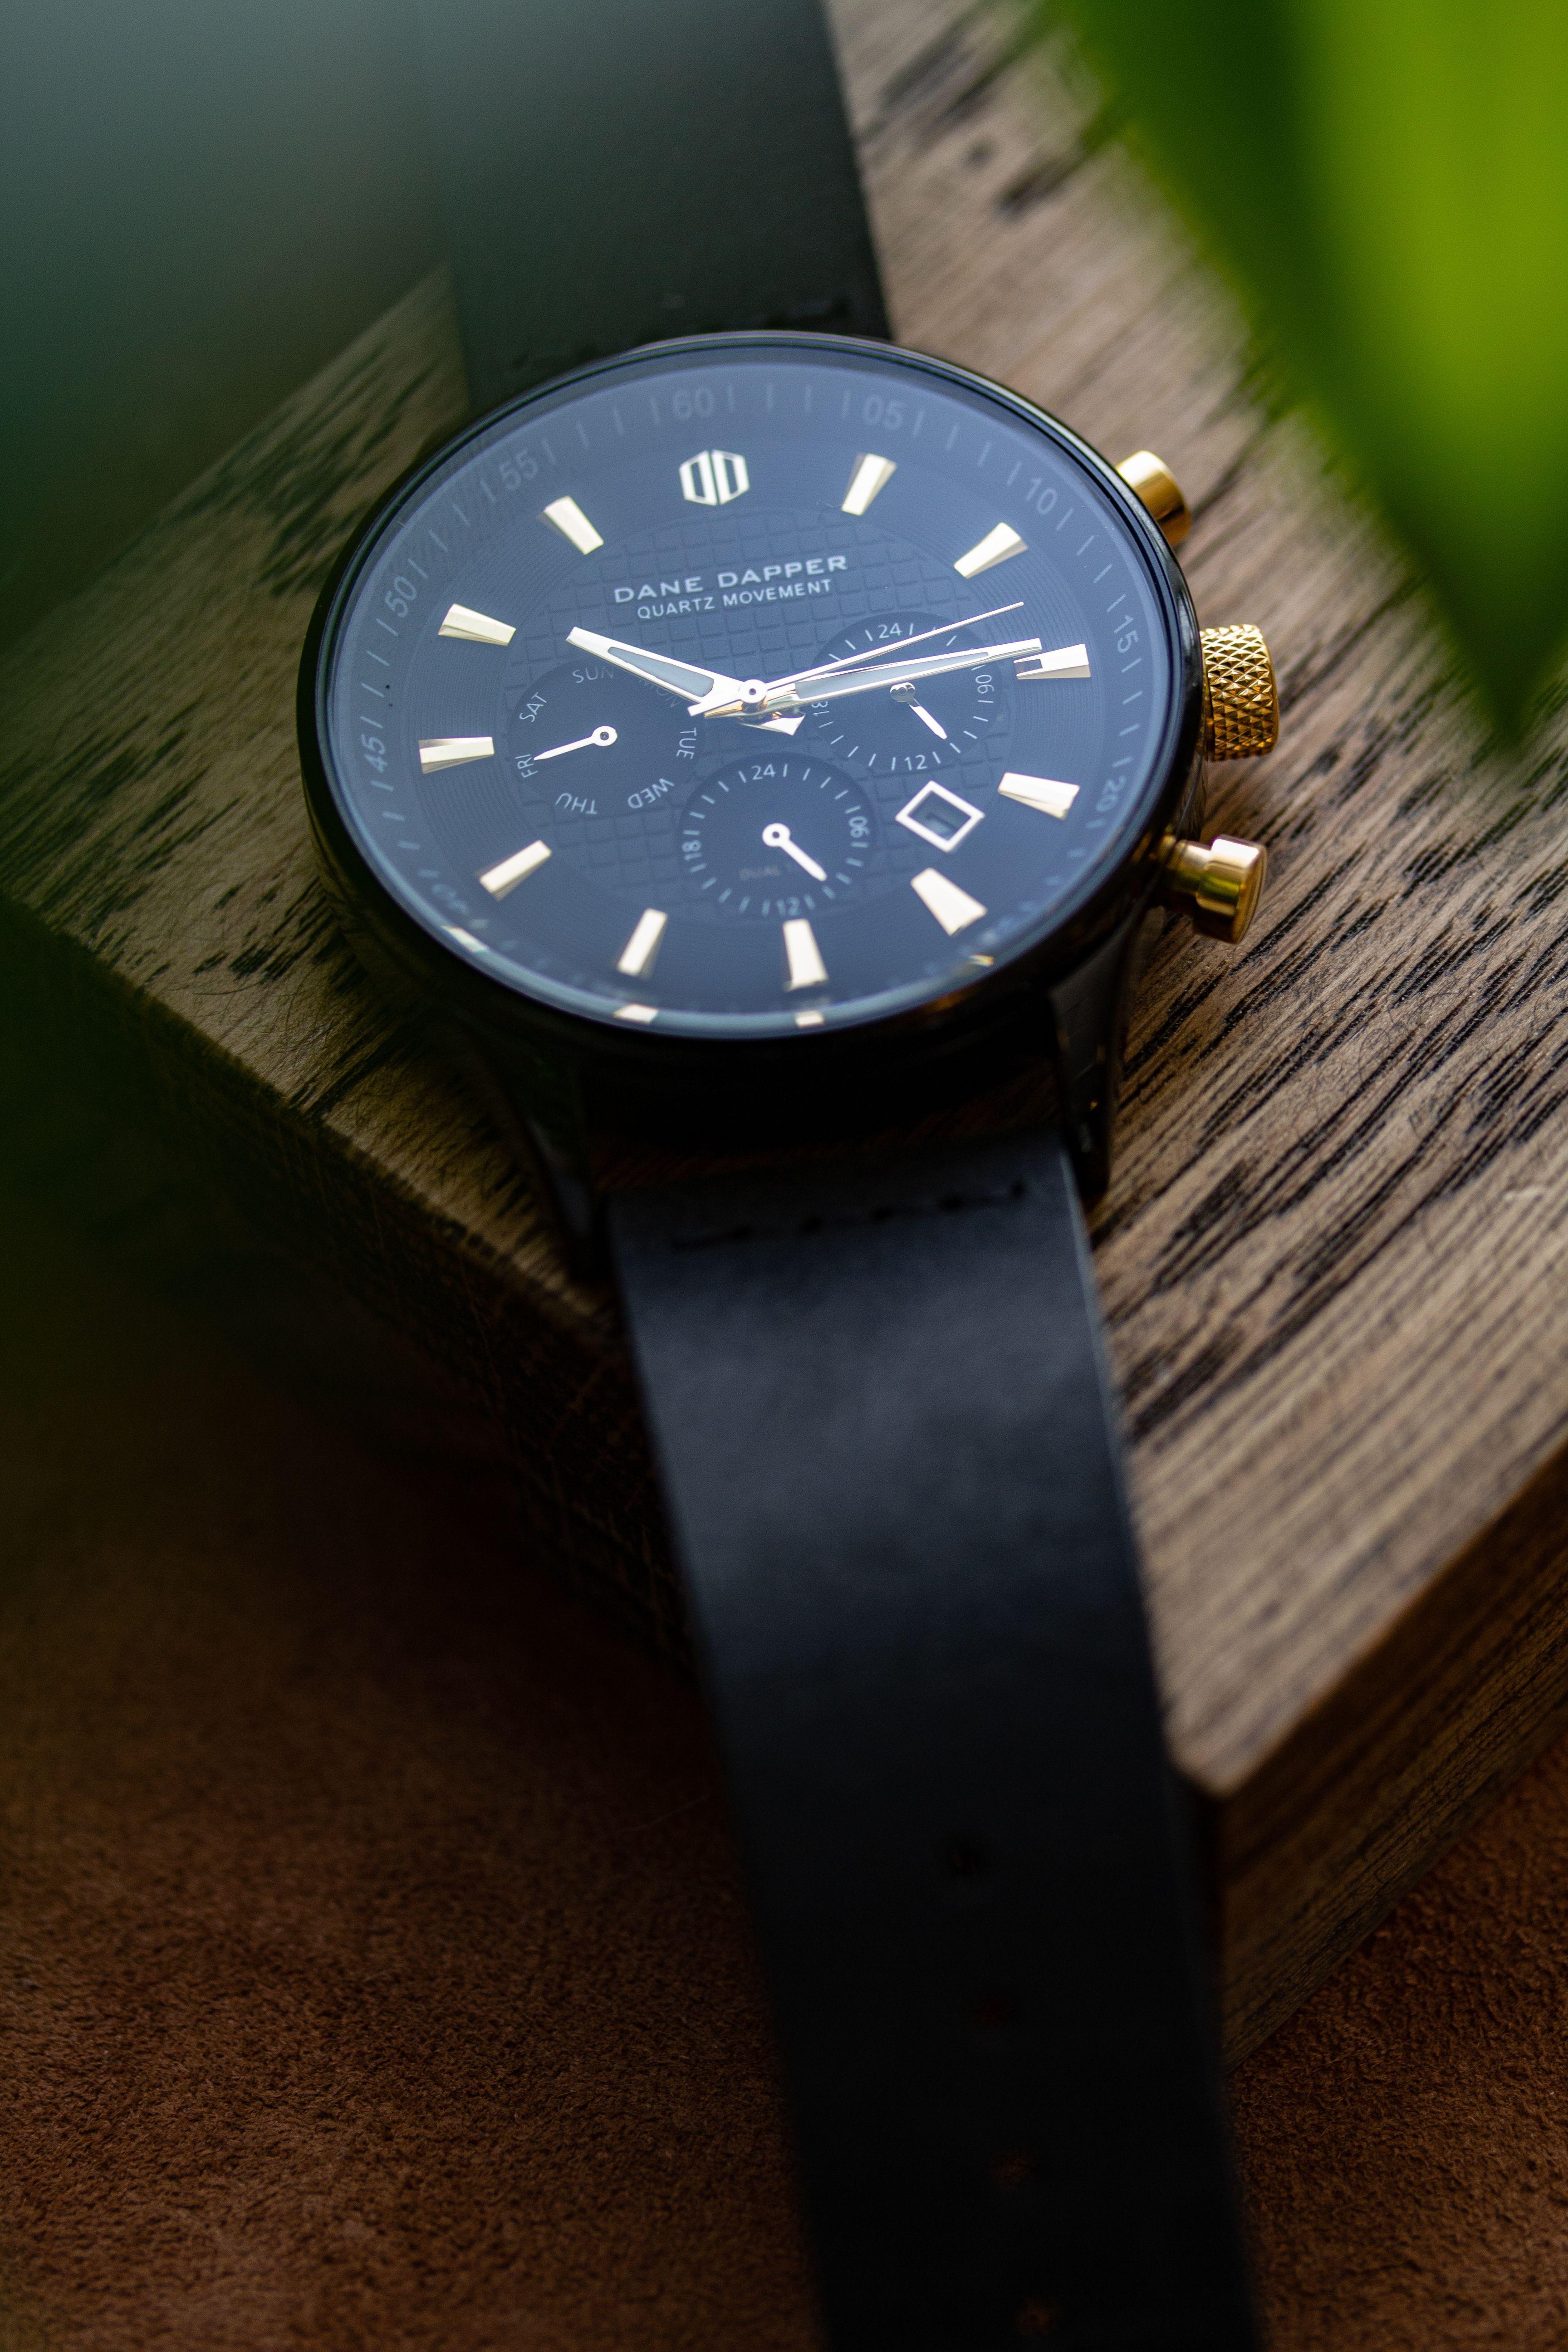 Pin by Karina Viegas on Watch in 2020 Watches for men